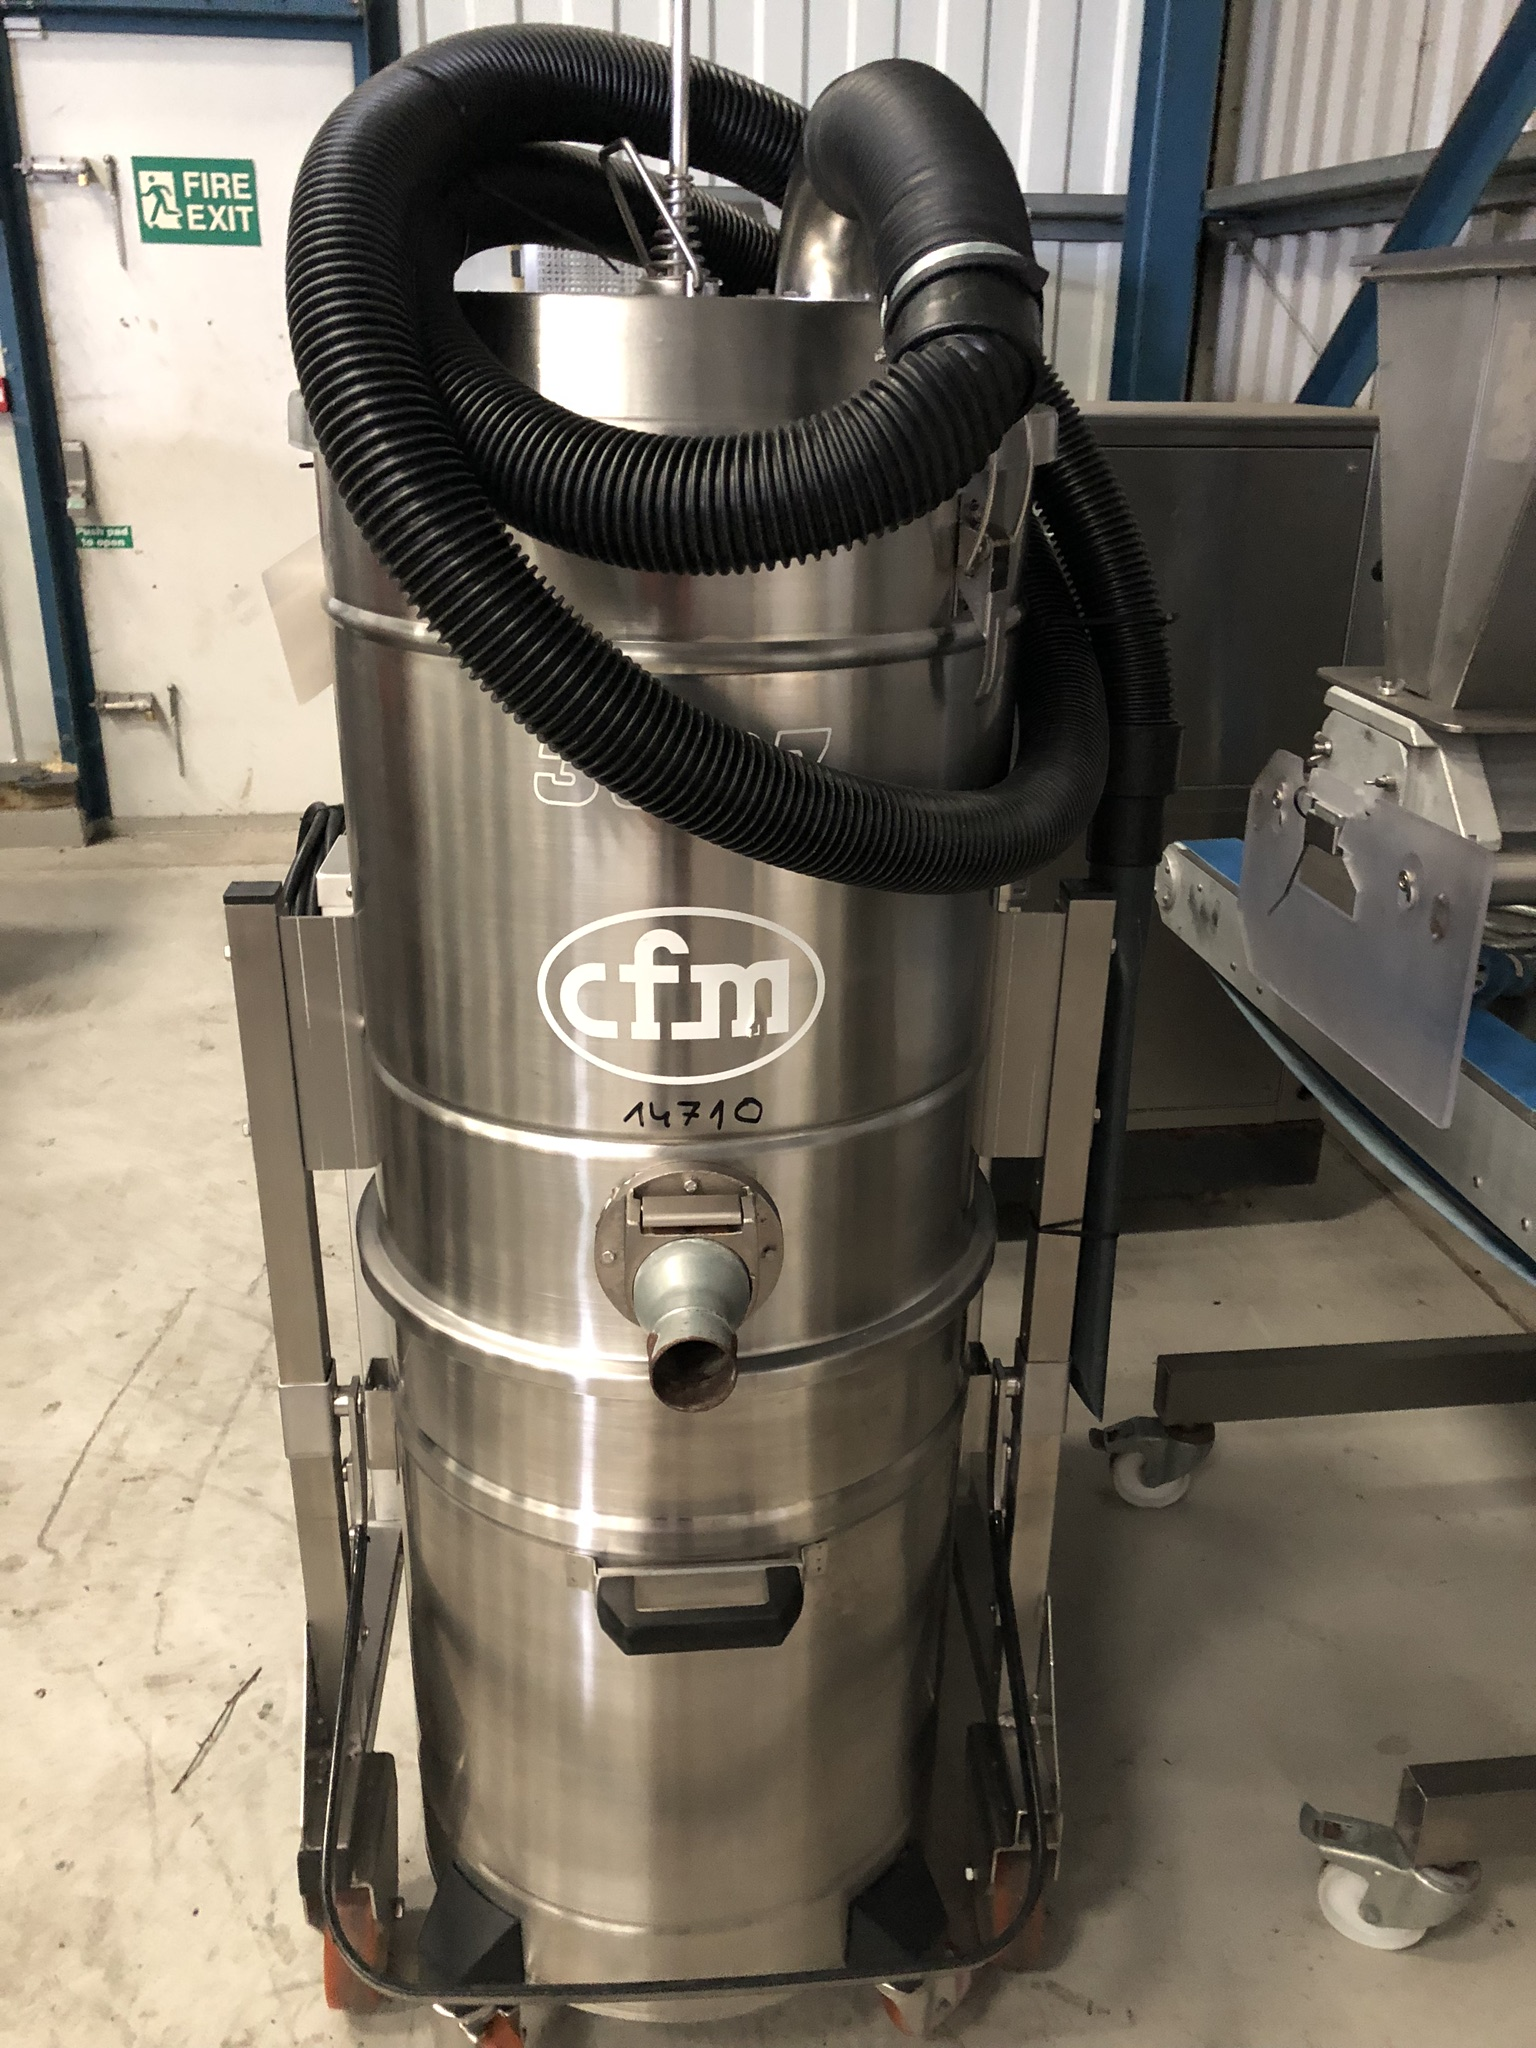 CFM 3307 AXXX INDUSTRIAL VACUUM CLEANER, serial no. 00AE915, approx. 1.5m high x 1.2m x 0.6m, lift - Image 4 of 4